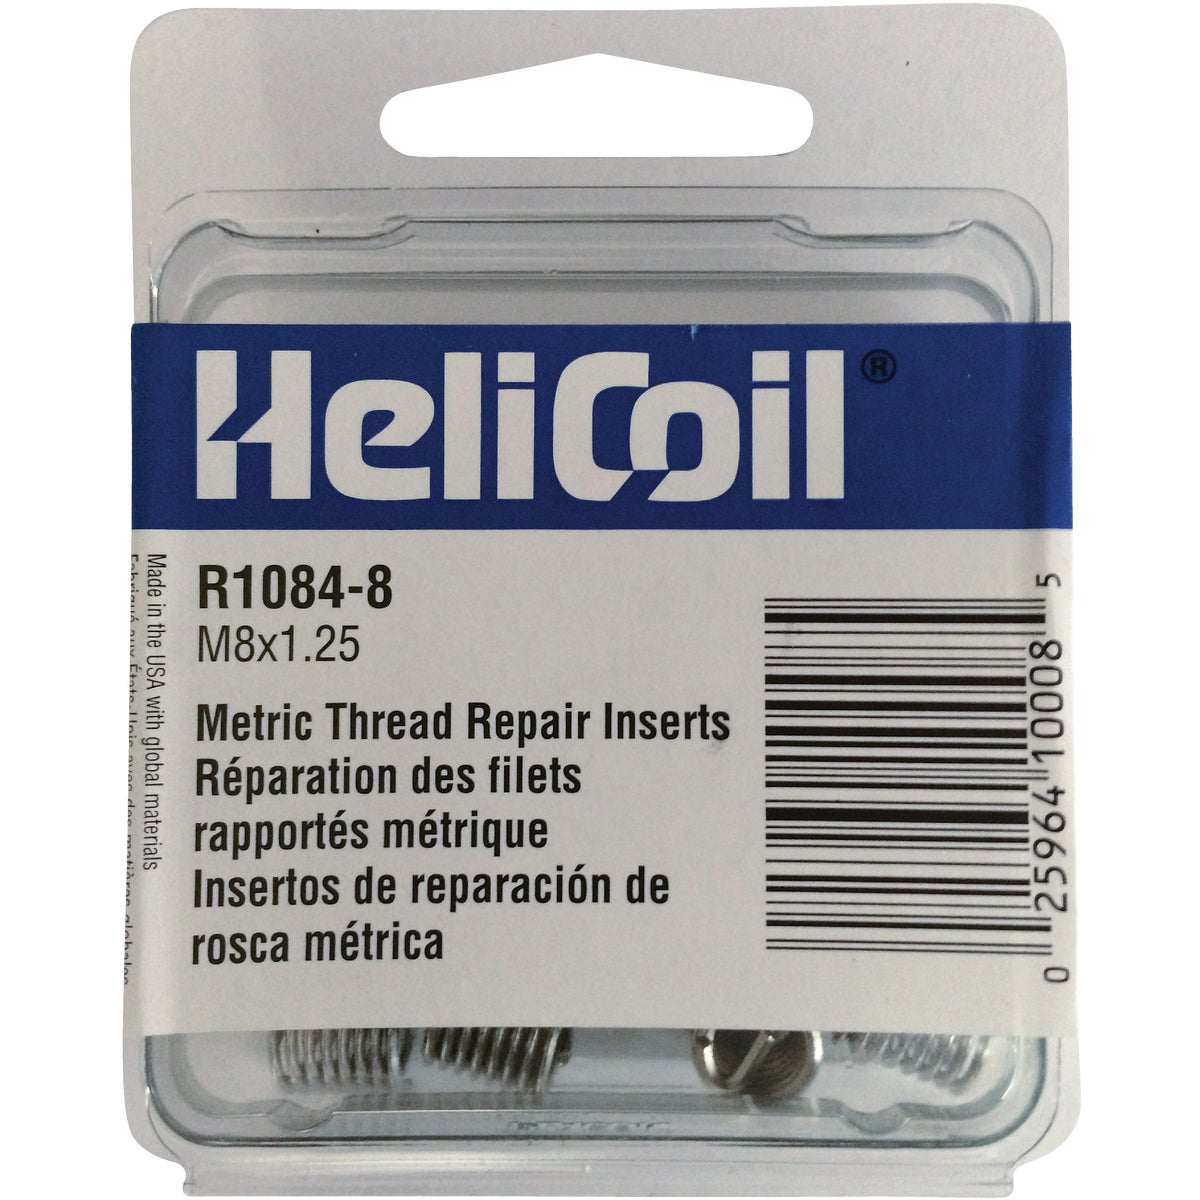 M8X1.25 THREAD REPAIR - R1084-8 by Helicoil Div Emhart